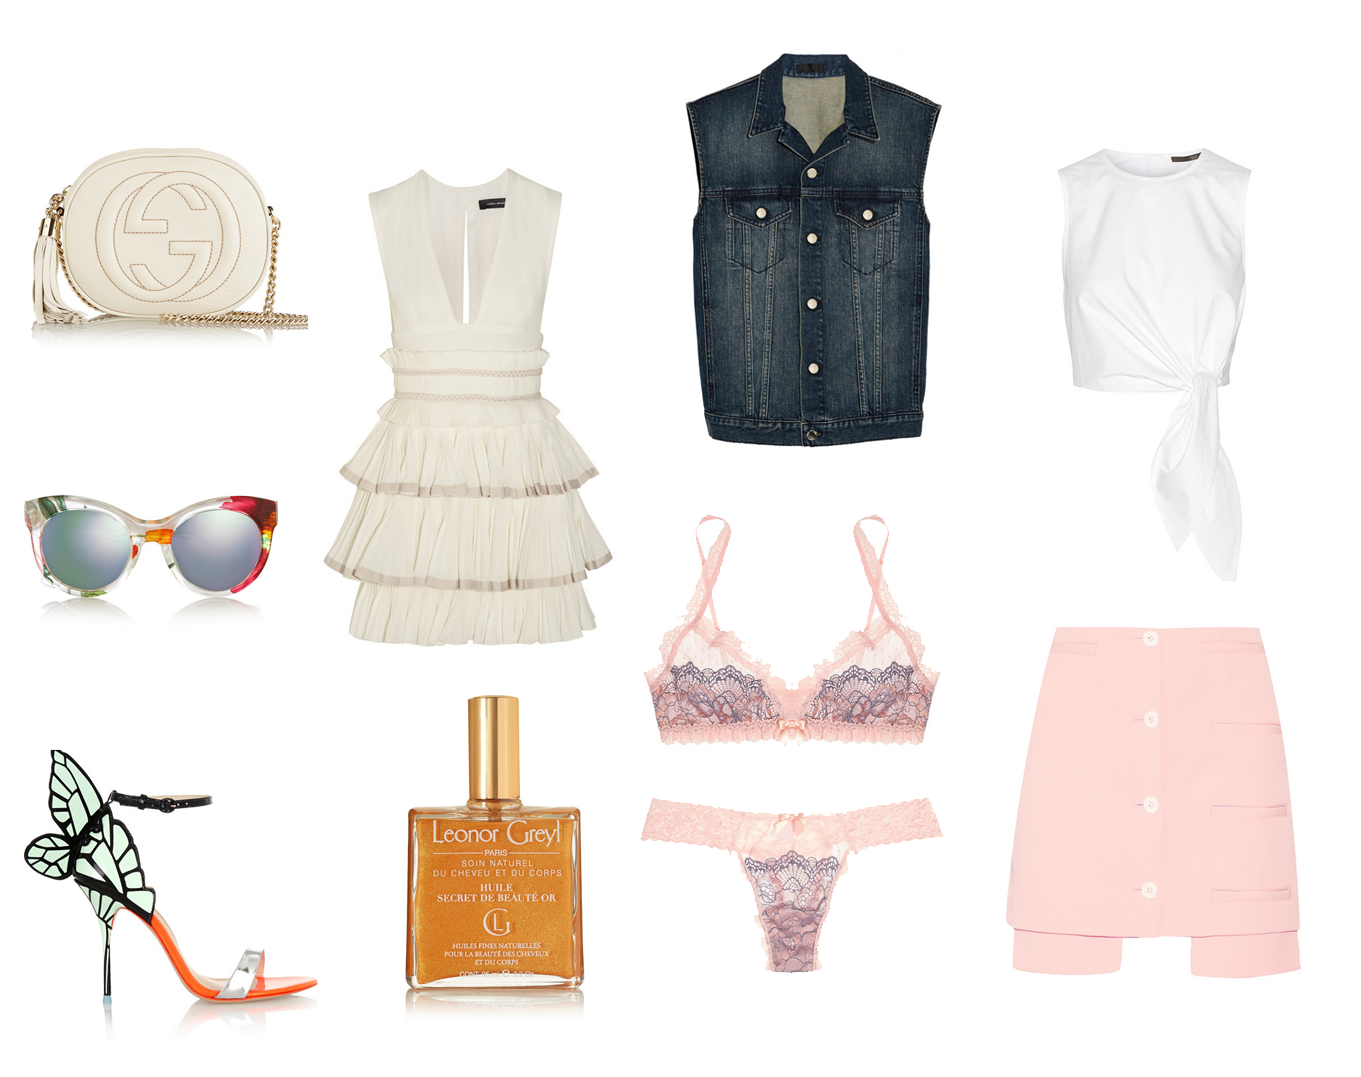 wishlist, spring, sophia webster, isabel marant, tibi, blk dnm, gucci, pardon my obsession